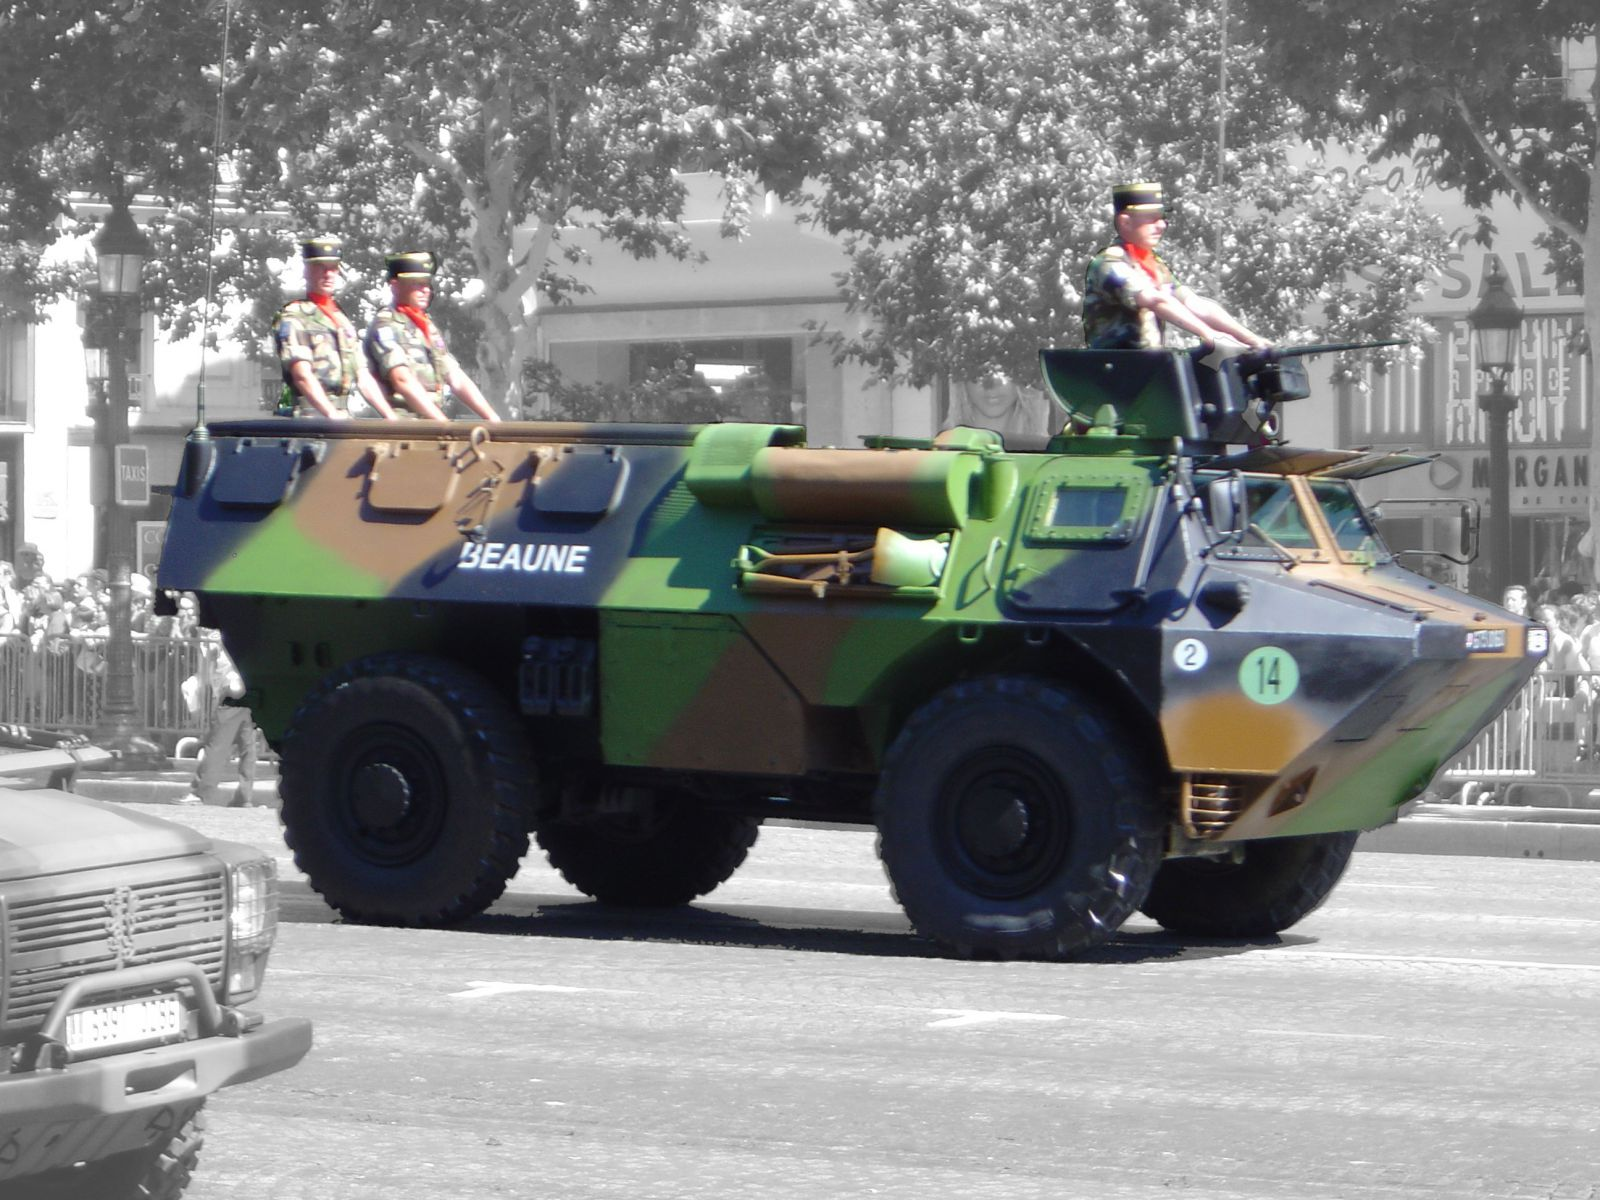 VAB_armoured_personnel_carrier_DSC00846-